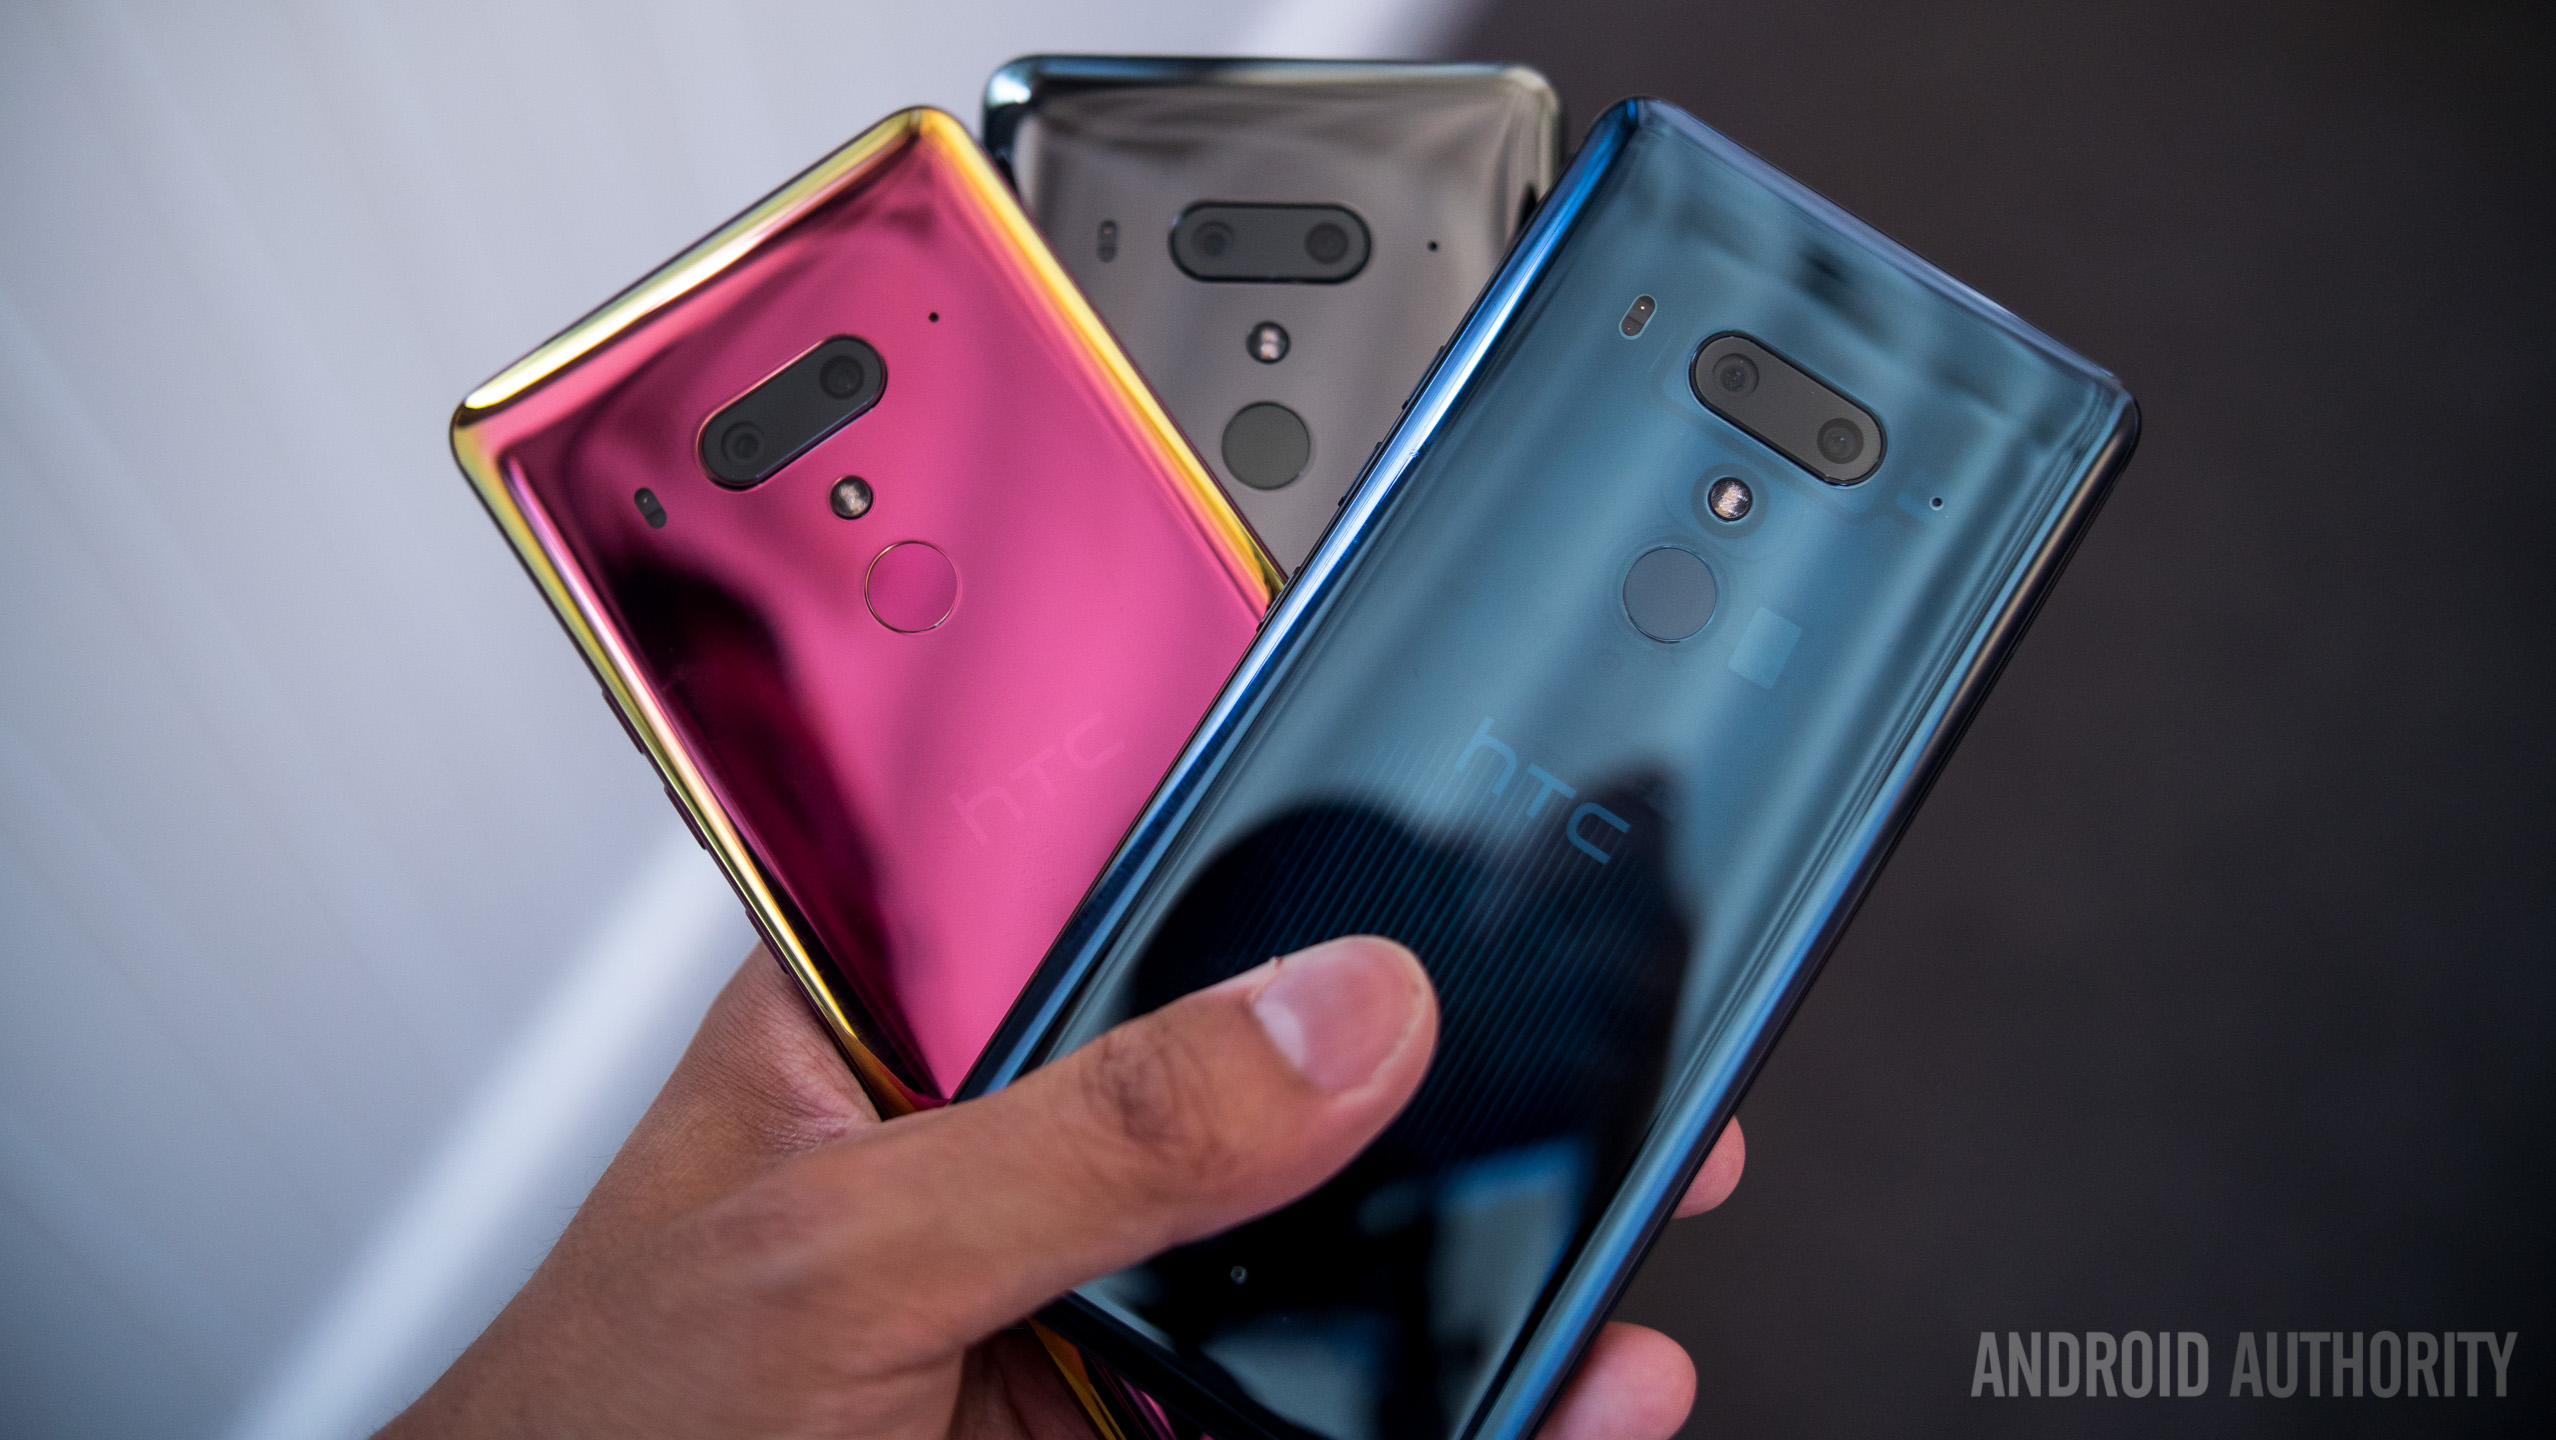 HTC U12 Plus wallpapers: Download all of them here